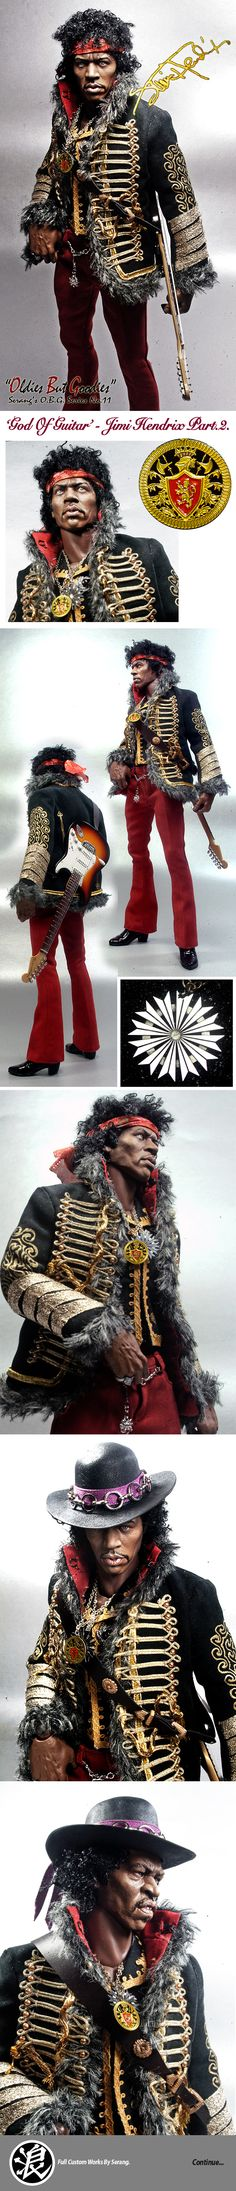 Kim Serang, Jimi Hendrix custom 1/6 figure... Insane work!